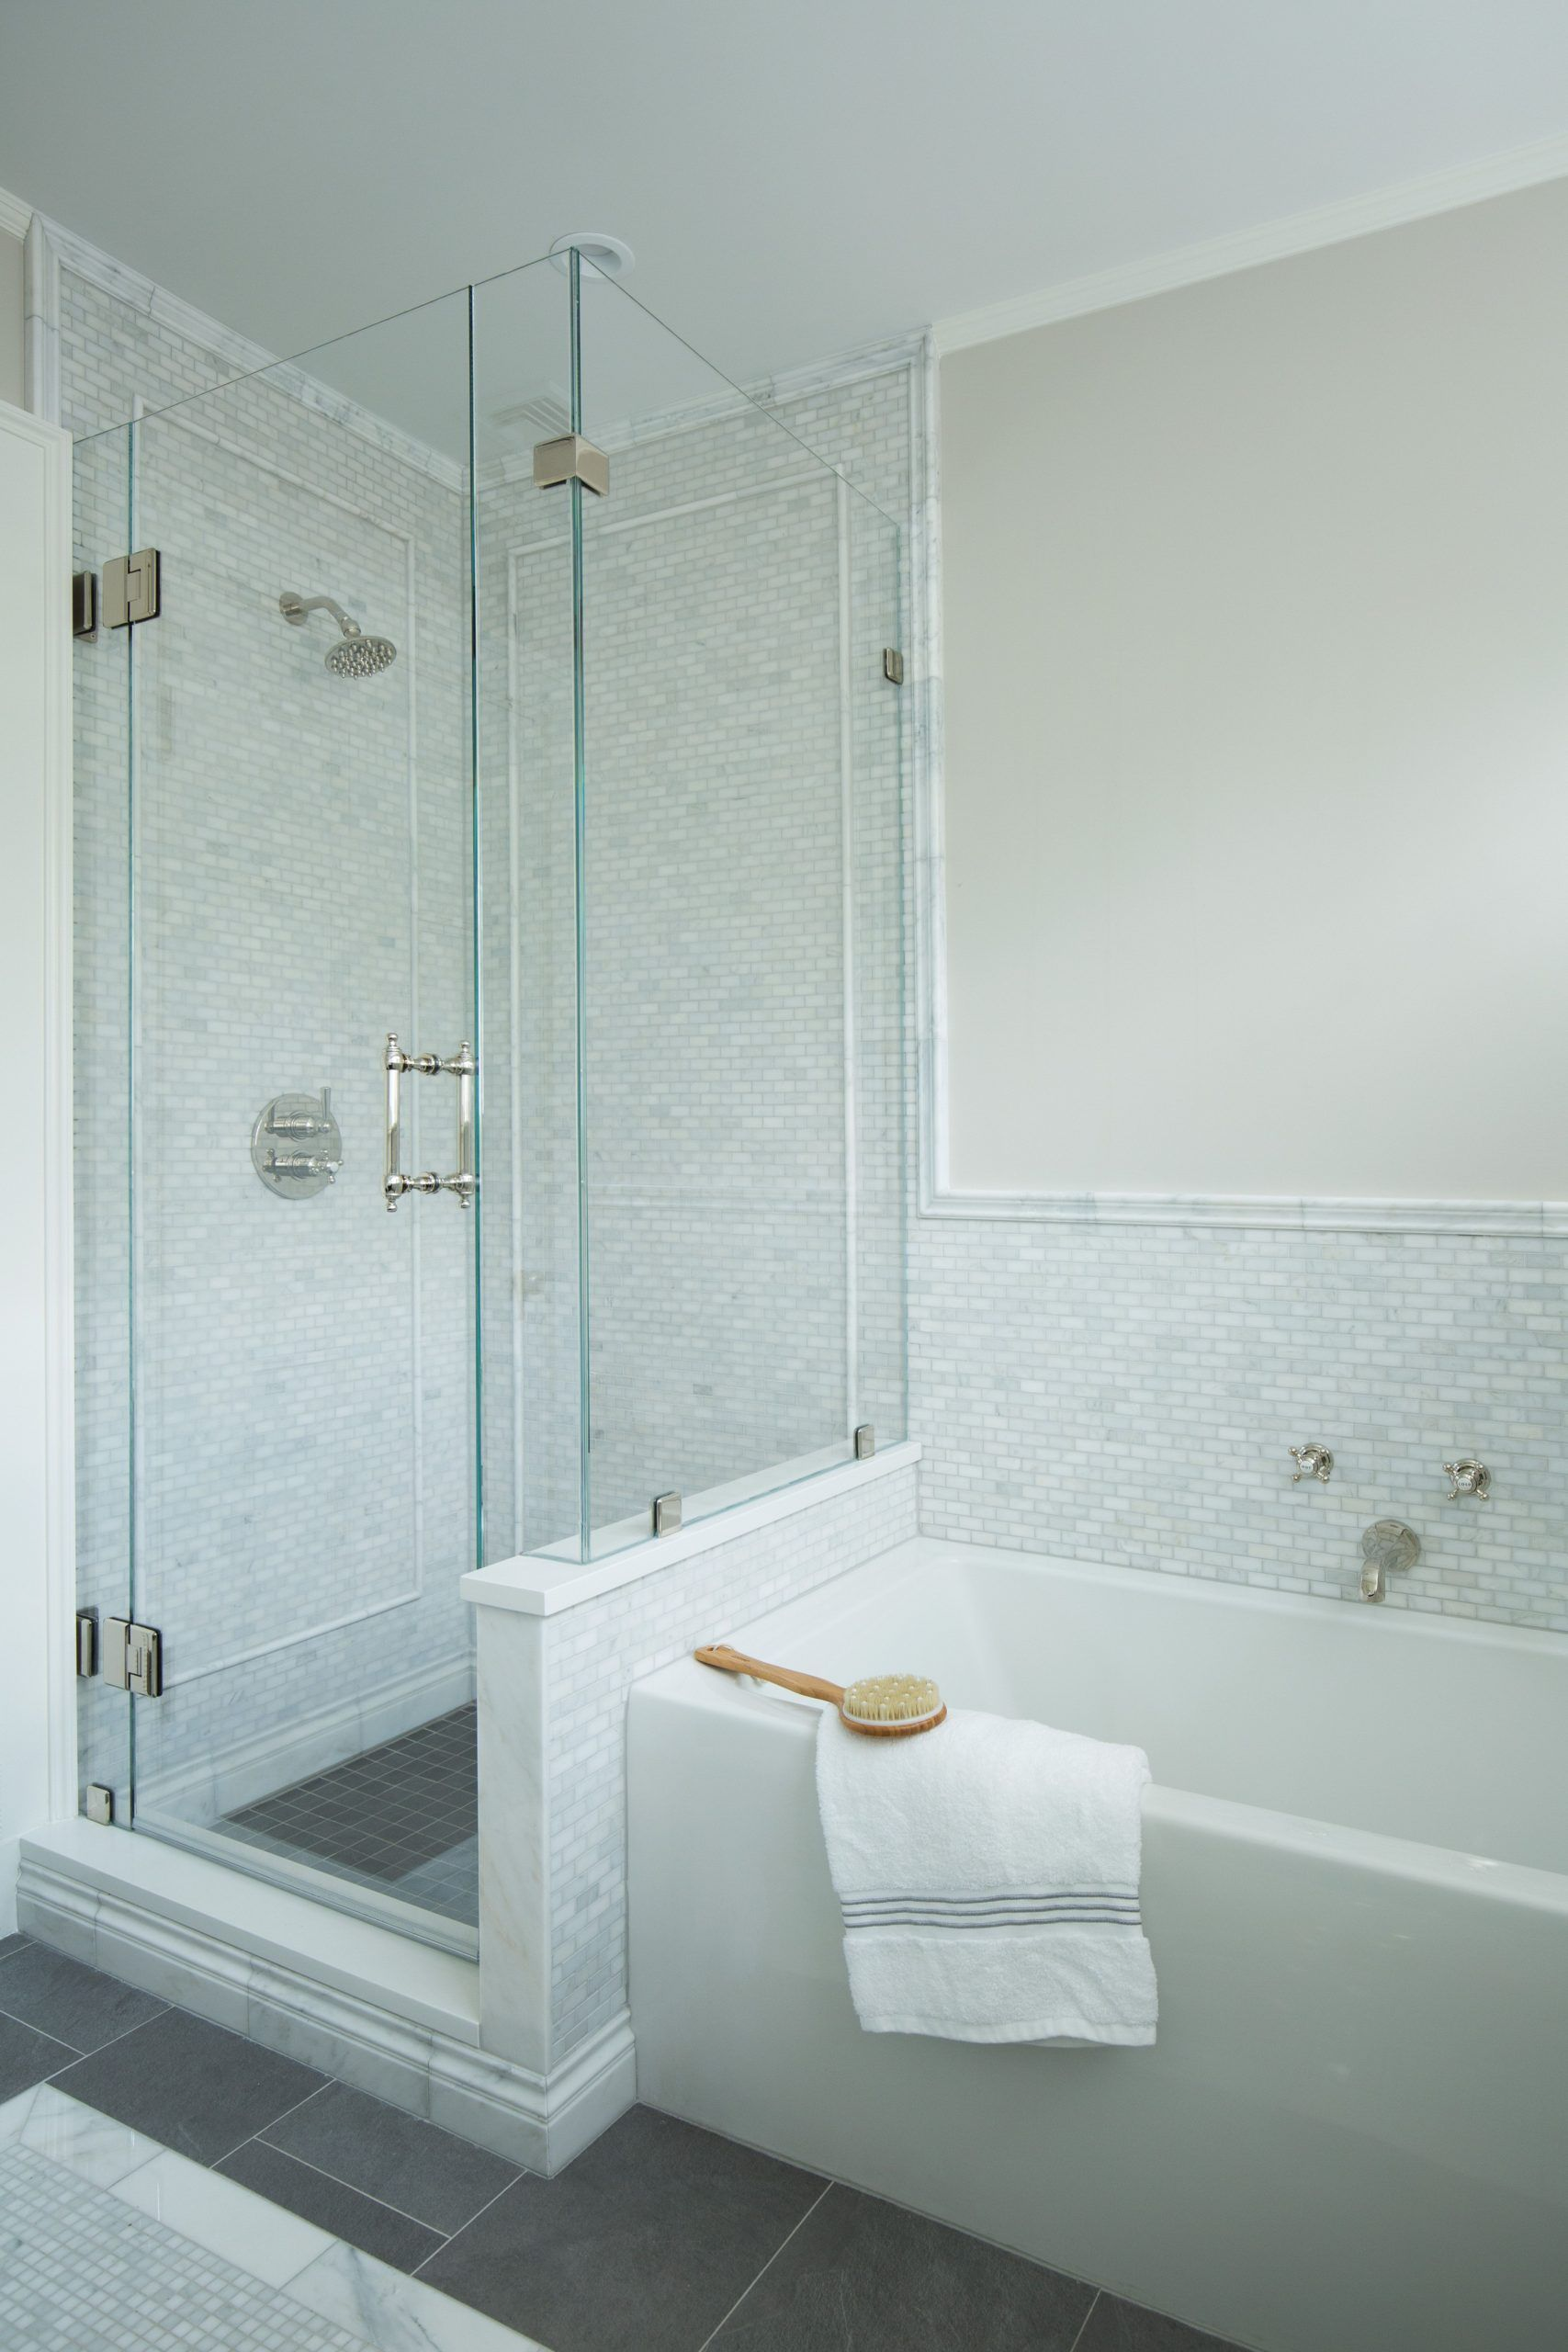 A Comprehensive Overview On Home Decoration In 2020 Tile Walk In Shower Soaking Tub Decor Soaking Tub